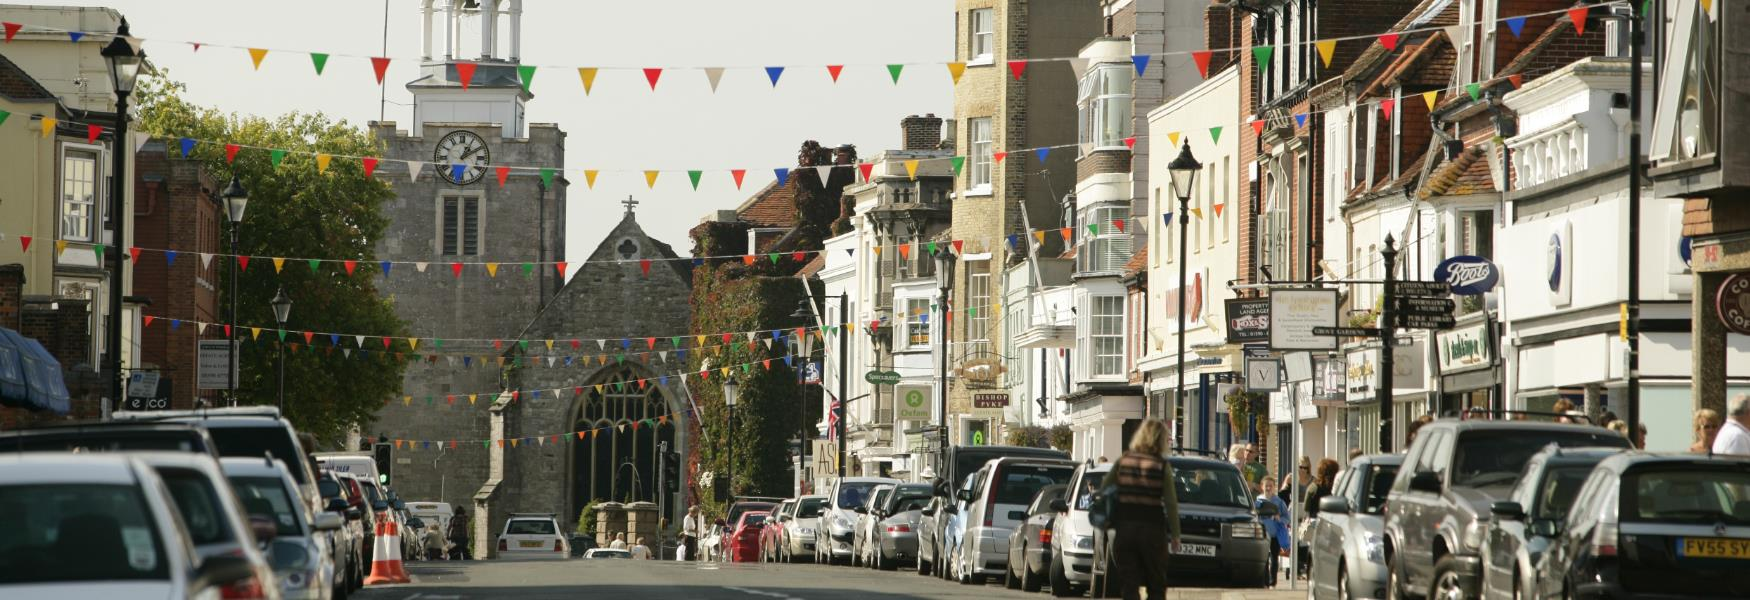 Lymington High Street in the New Forest